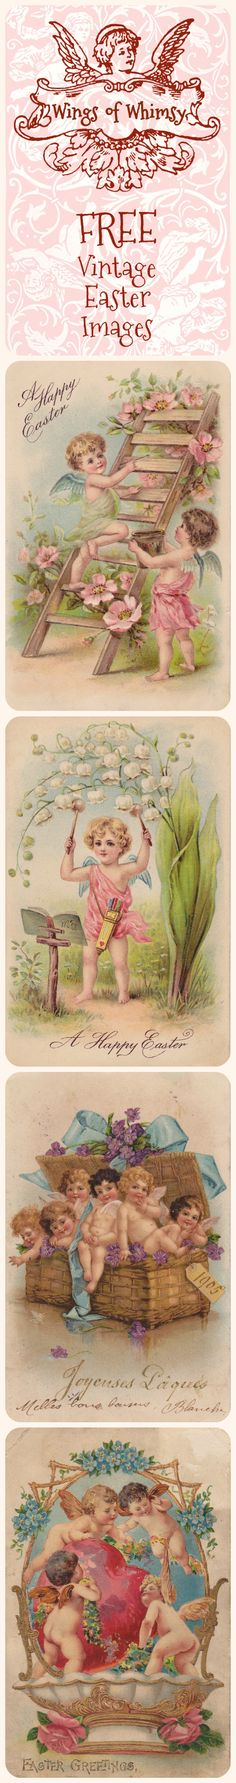 Wings of Whimsy: A Happy Easter